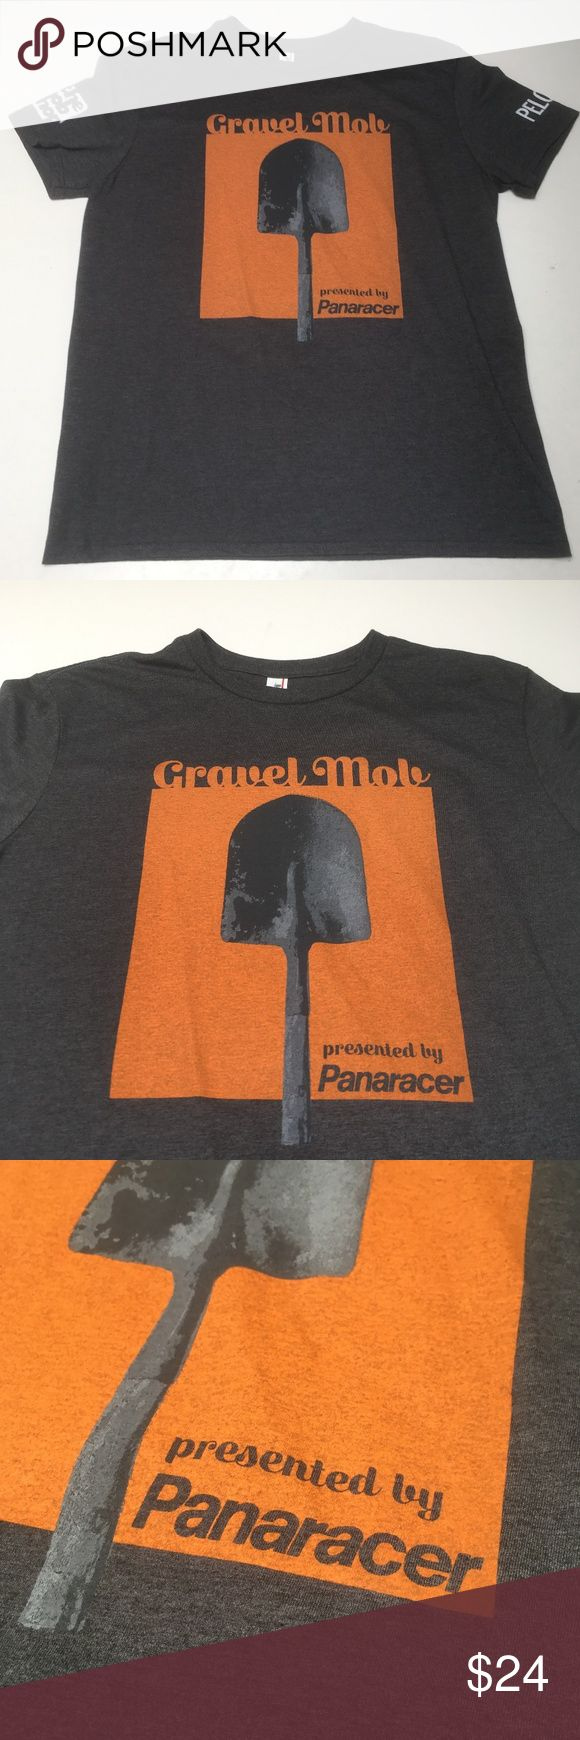 Gravel Mob Presented by Panaracer Peloton Shovel Awesome shirt for the casual rider or cyclocross freak Trusted Anvil quality  Please check measurements for fit reference  Smoke and pet-free storage Happy to answer any questions Thanks for looking Anvil Shirts Tees - Short Sleeve